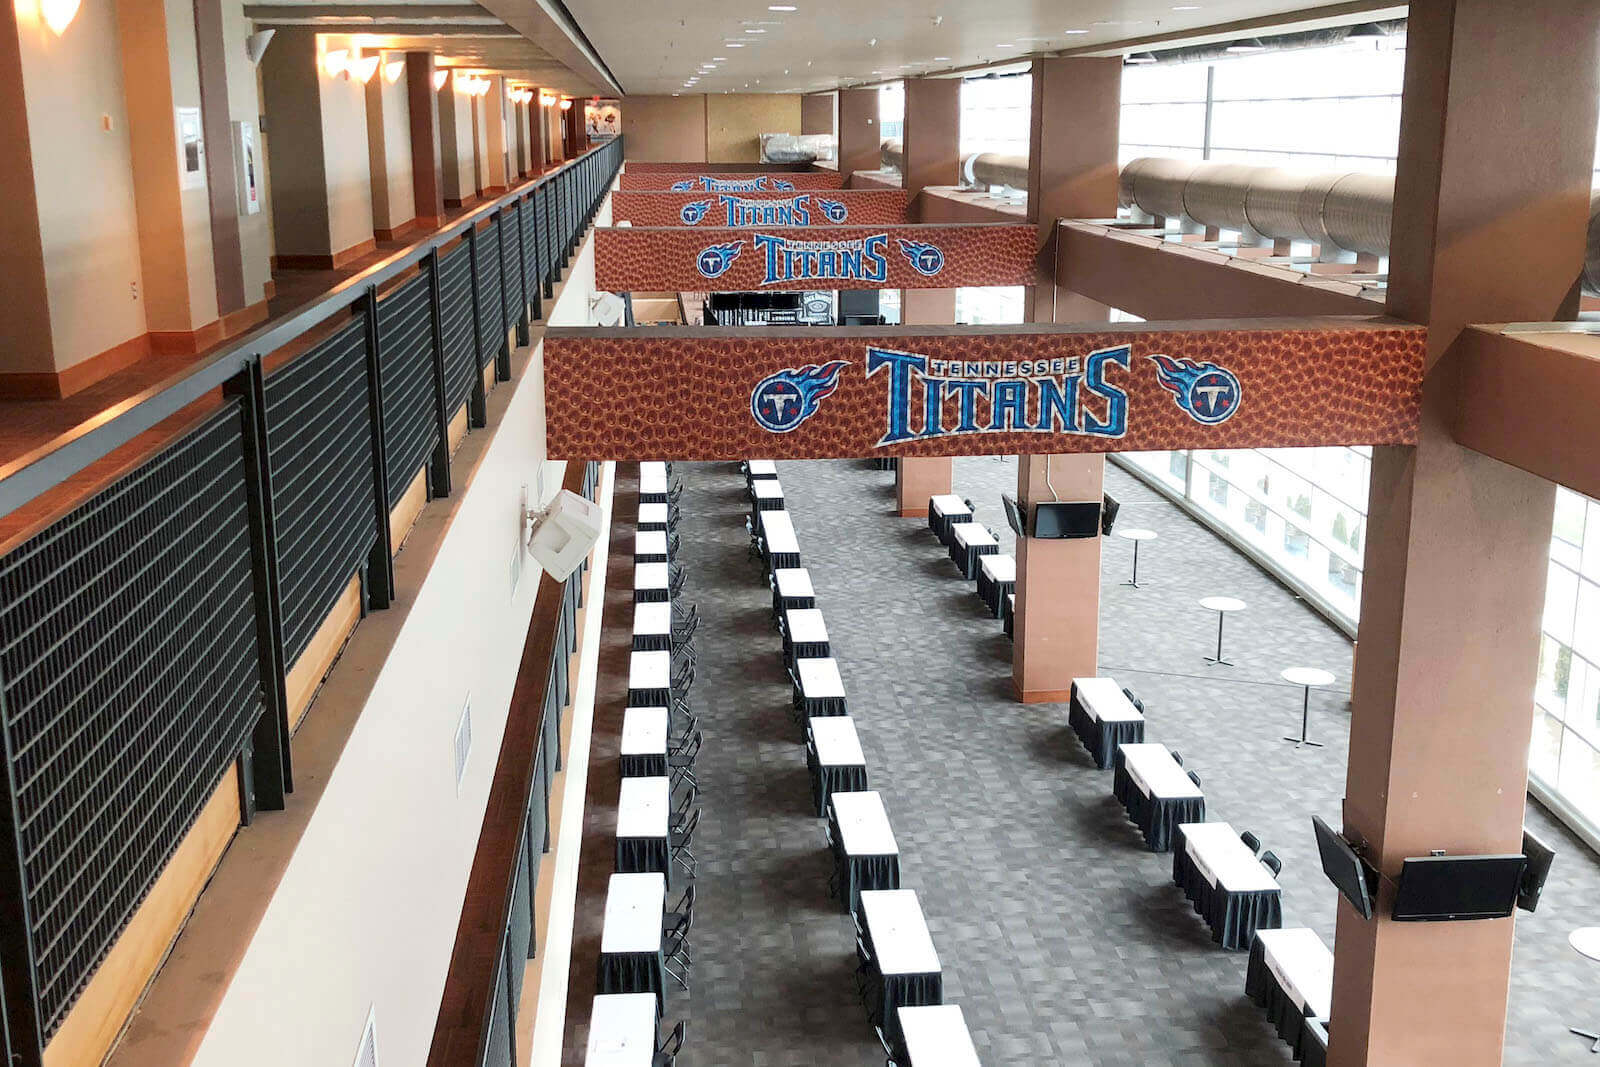 Titans Banners